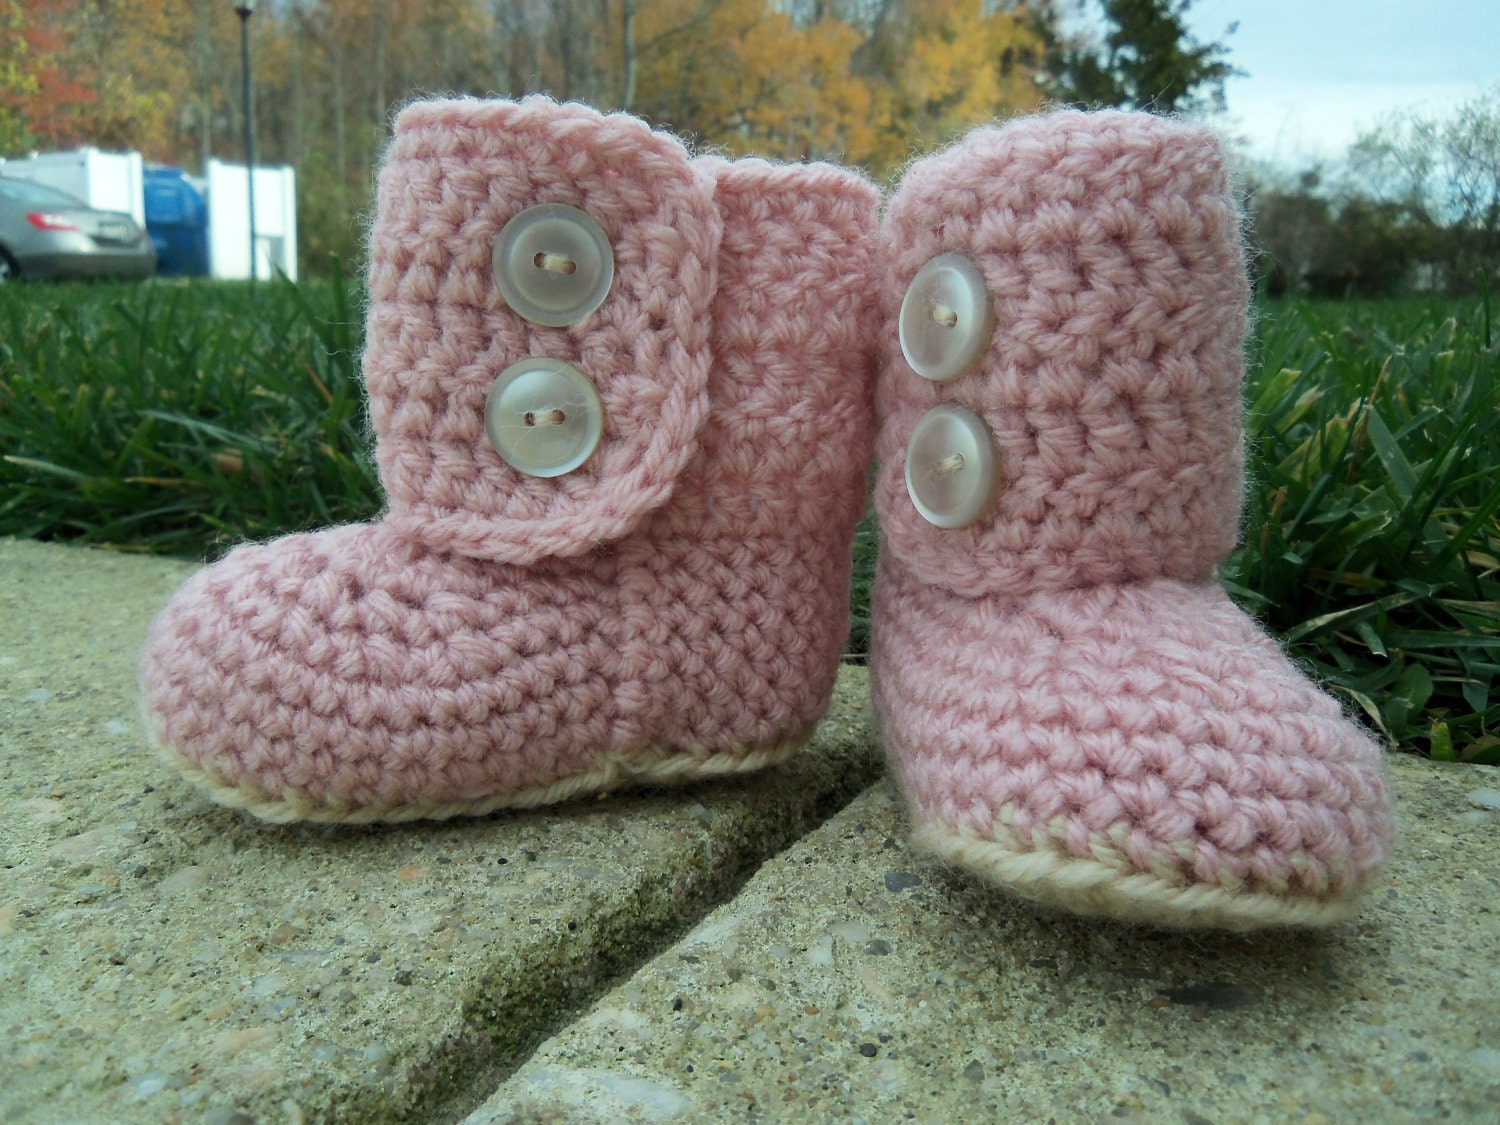 Crochet Pattern For Baby Ugg Booties : Crochet Baby Booties Pink Boots by cmiron on Etsy